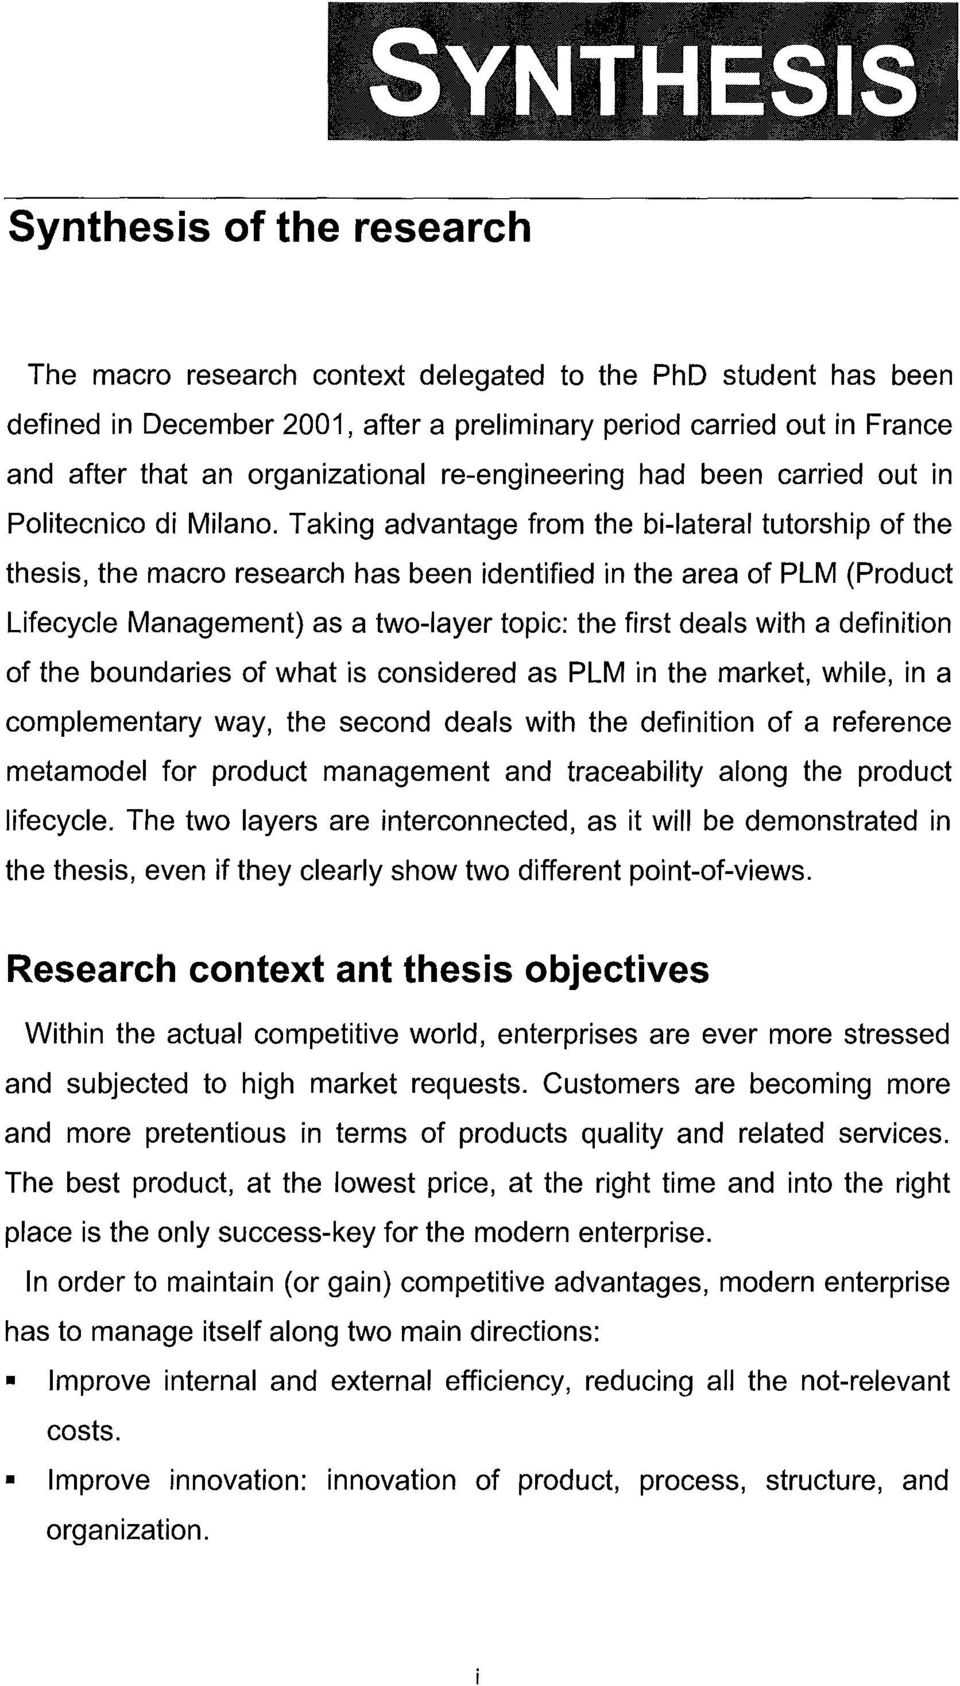 Taking advantage from the bi-iateral tutorship of the thesis, the macro research has been identified in the area of PLM (Product Lifecycle Management) as a two-iayer topic: the first deals with a